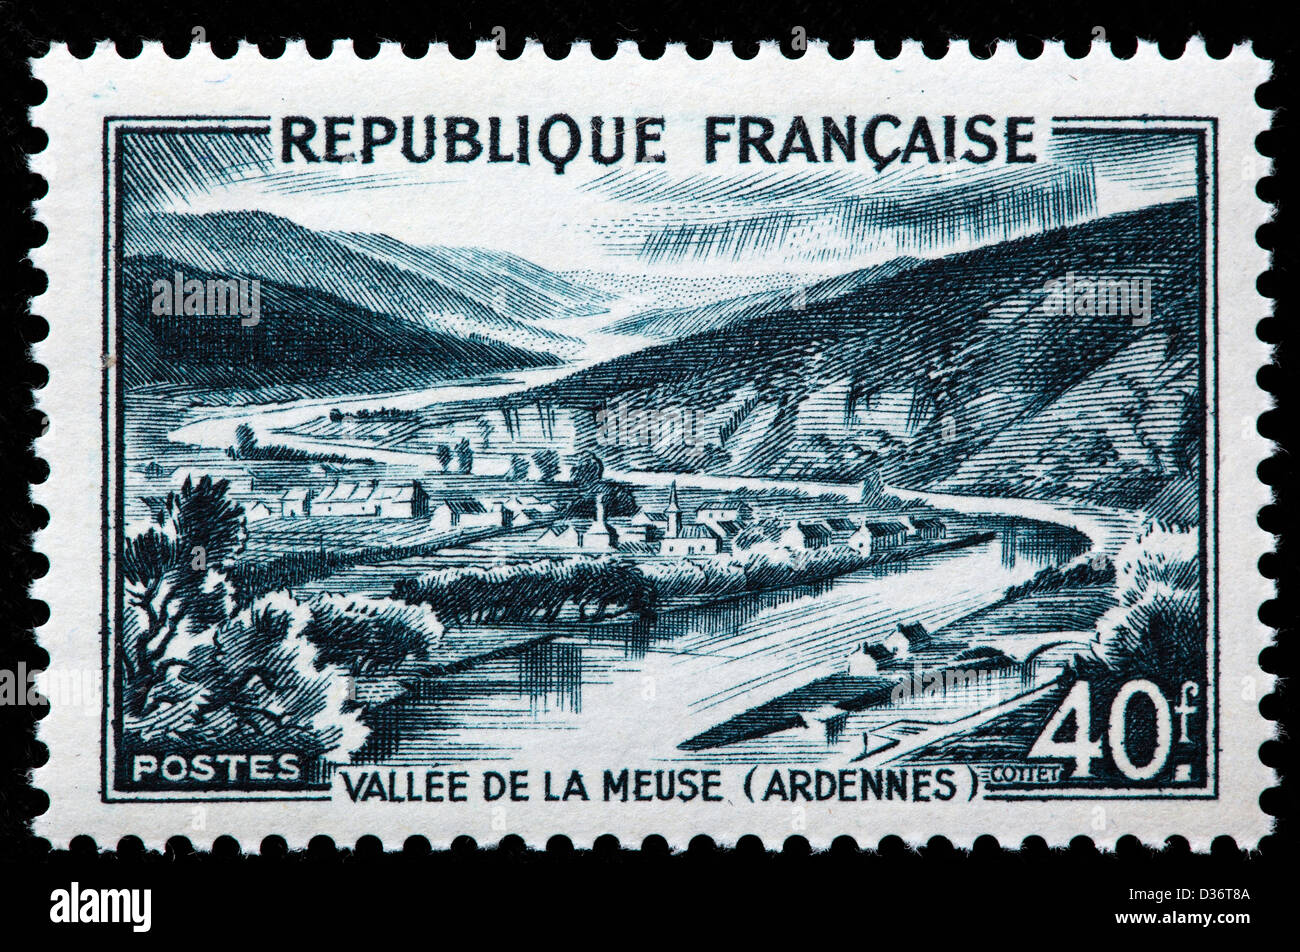 Meuse Valley, Ardennes, postage stamp, France, 1949 - Stock Image